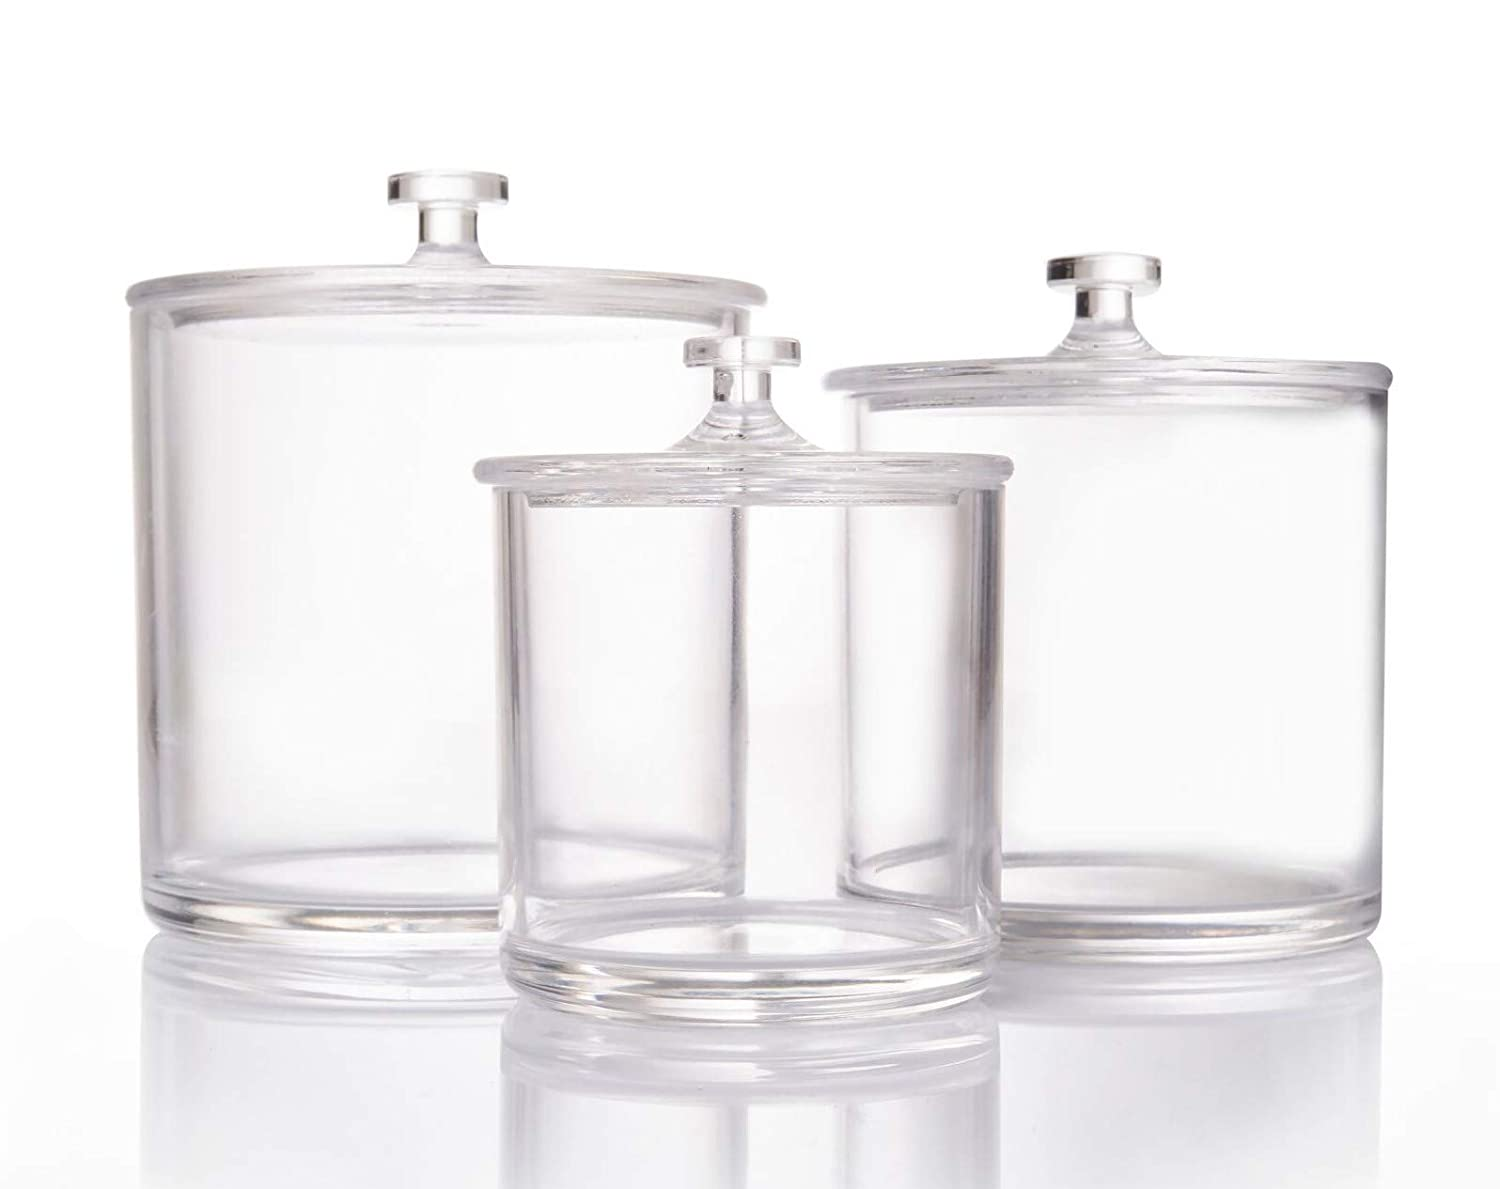 Beautiii Premium Crystal Clear Apothecary Jars | Set of 3